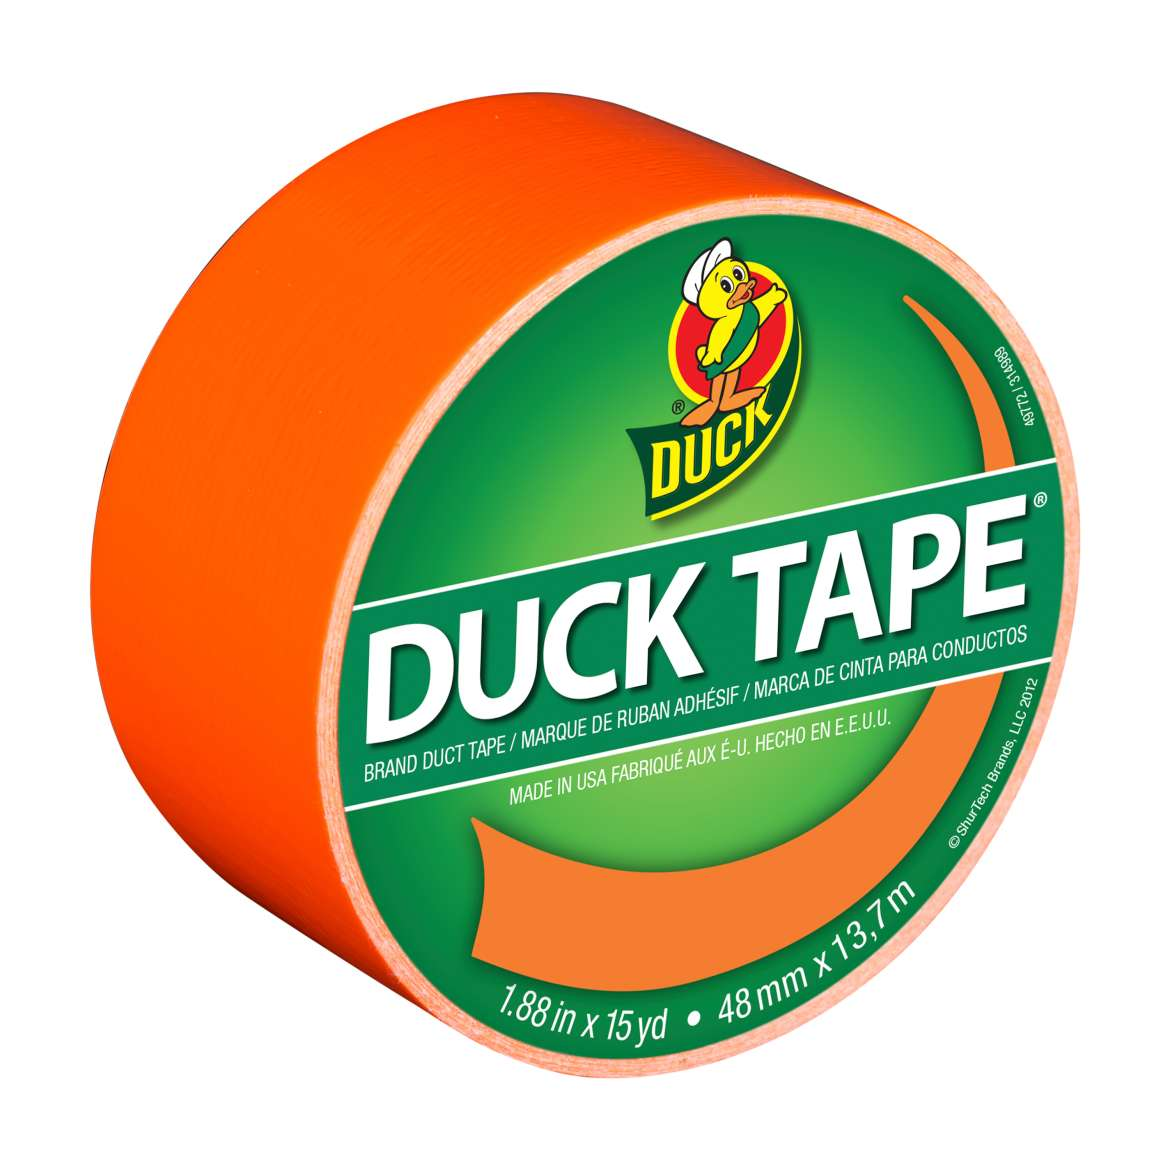 Color Duck Tape® Brand Duct Tape - Neon Orange, 1.88 in. x 15 yd. Image